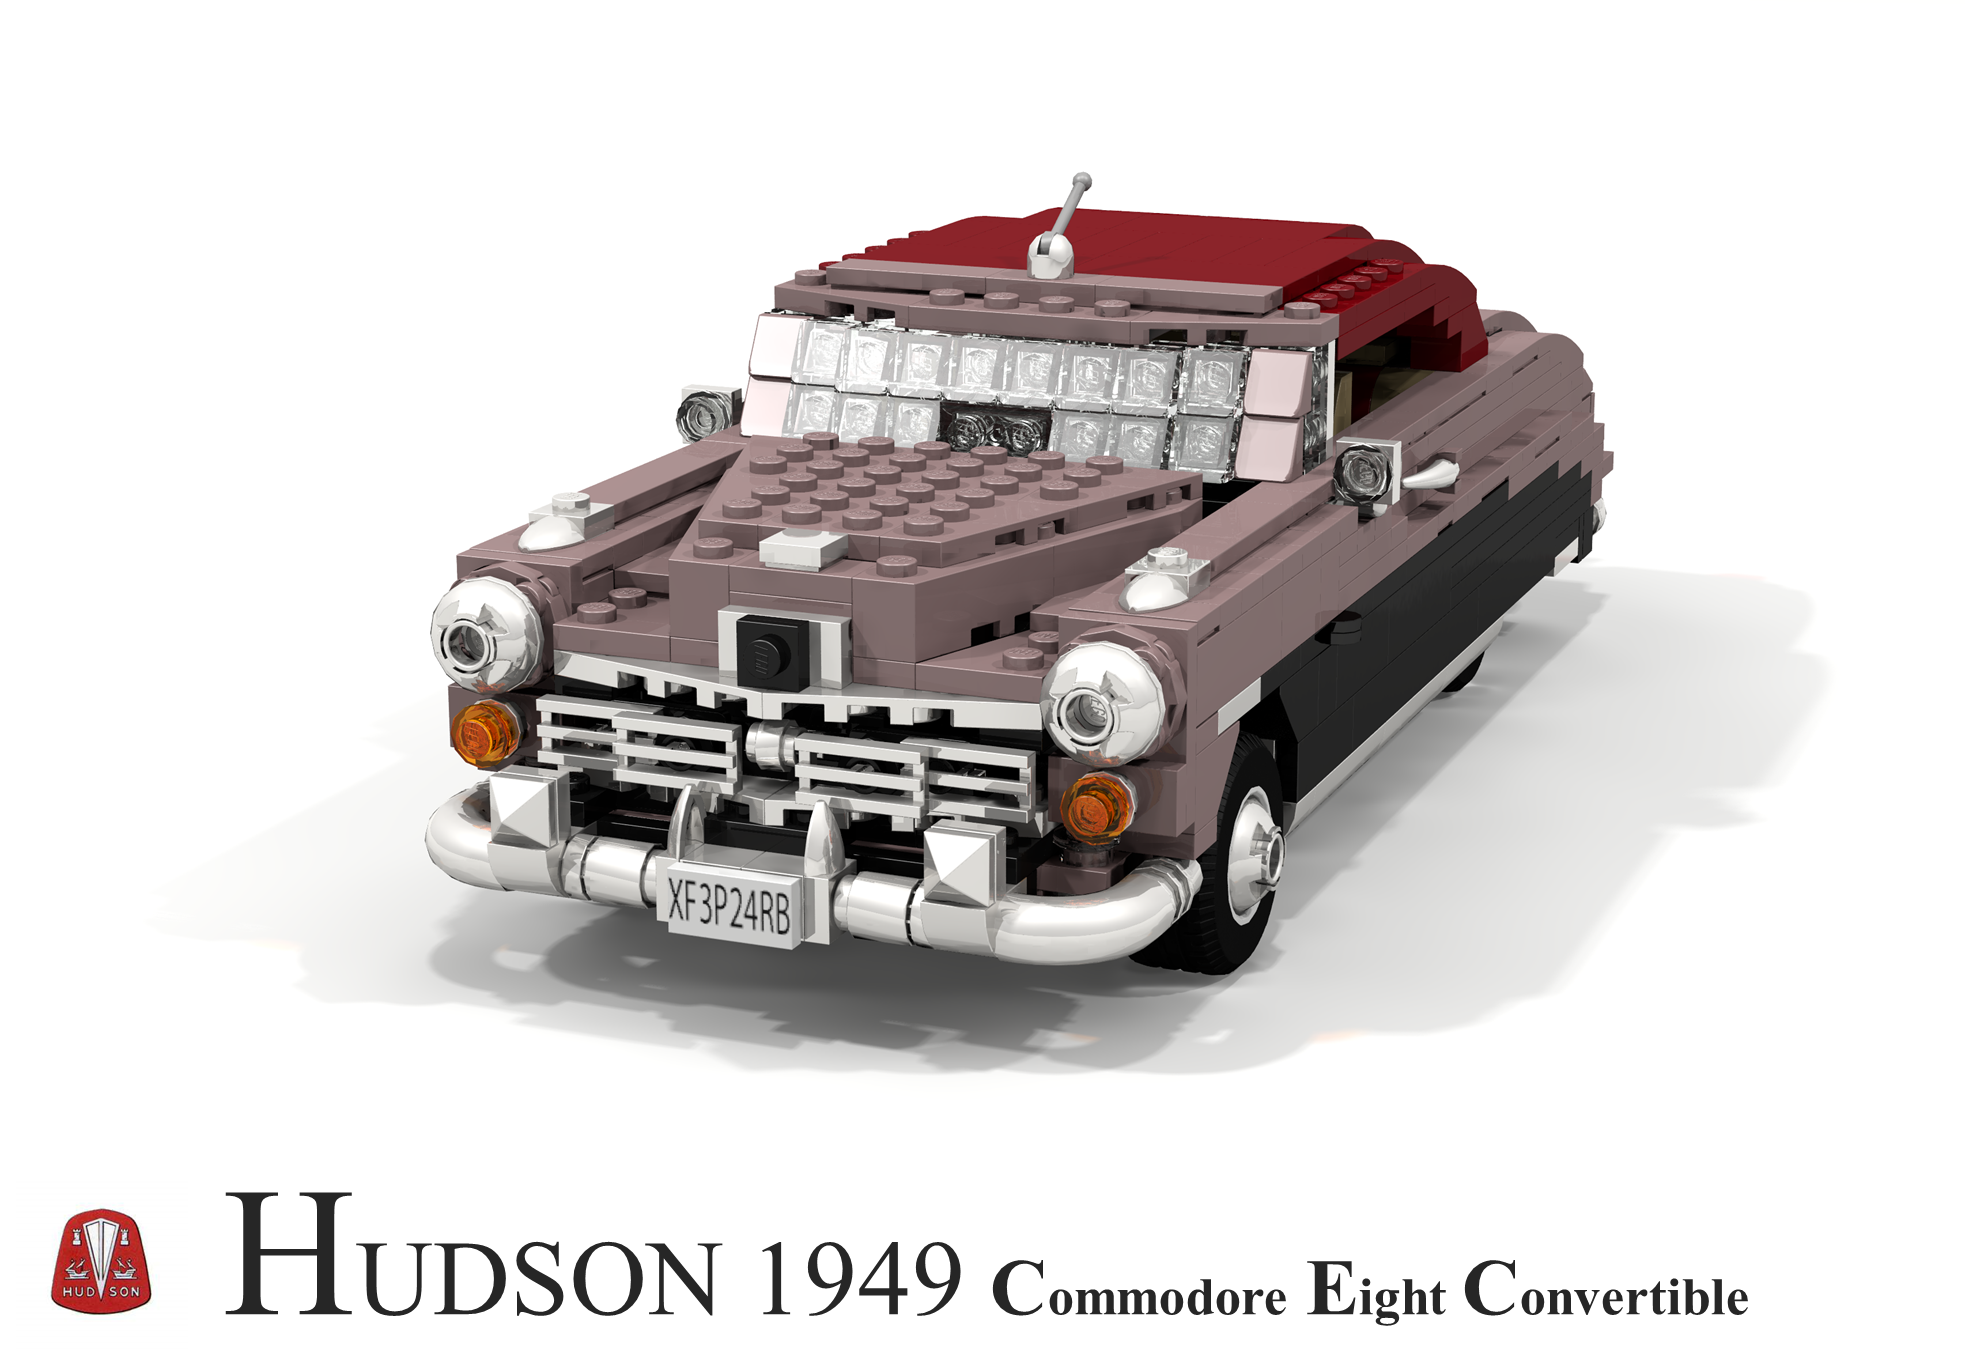 hudson_1949_commodore_eight_convertible_01.png